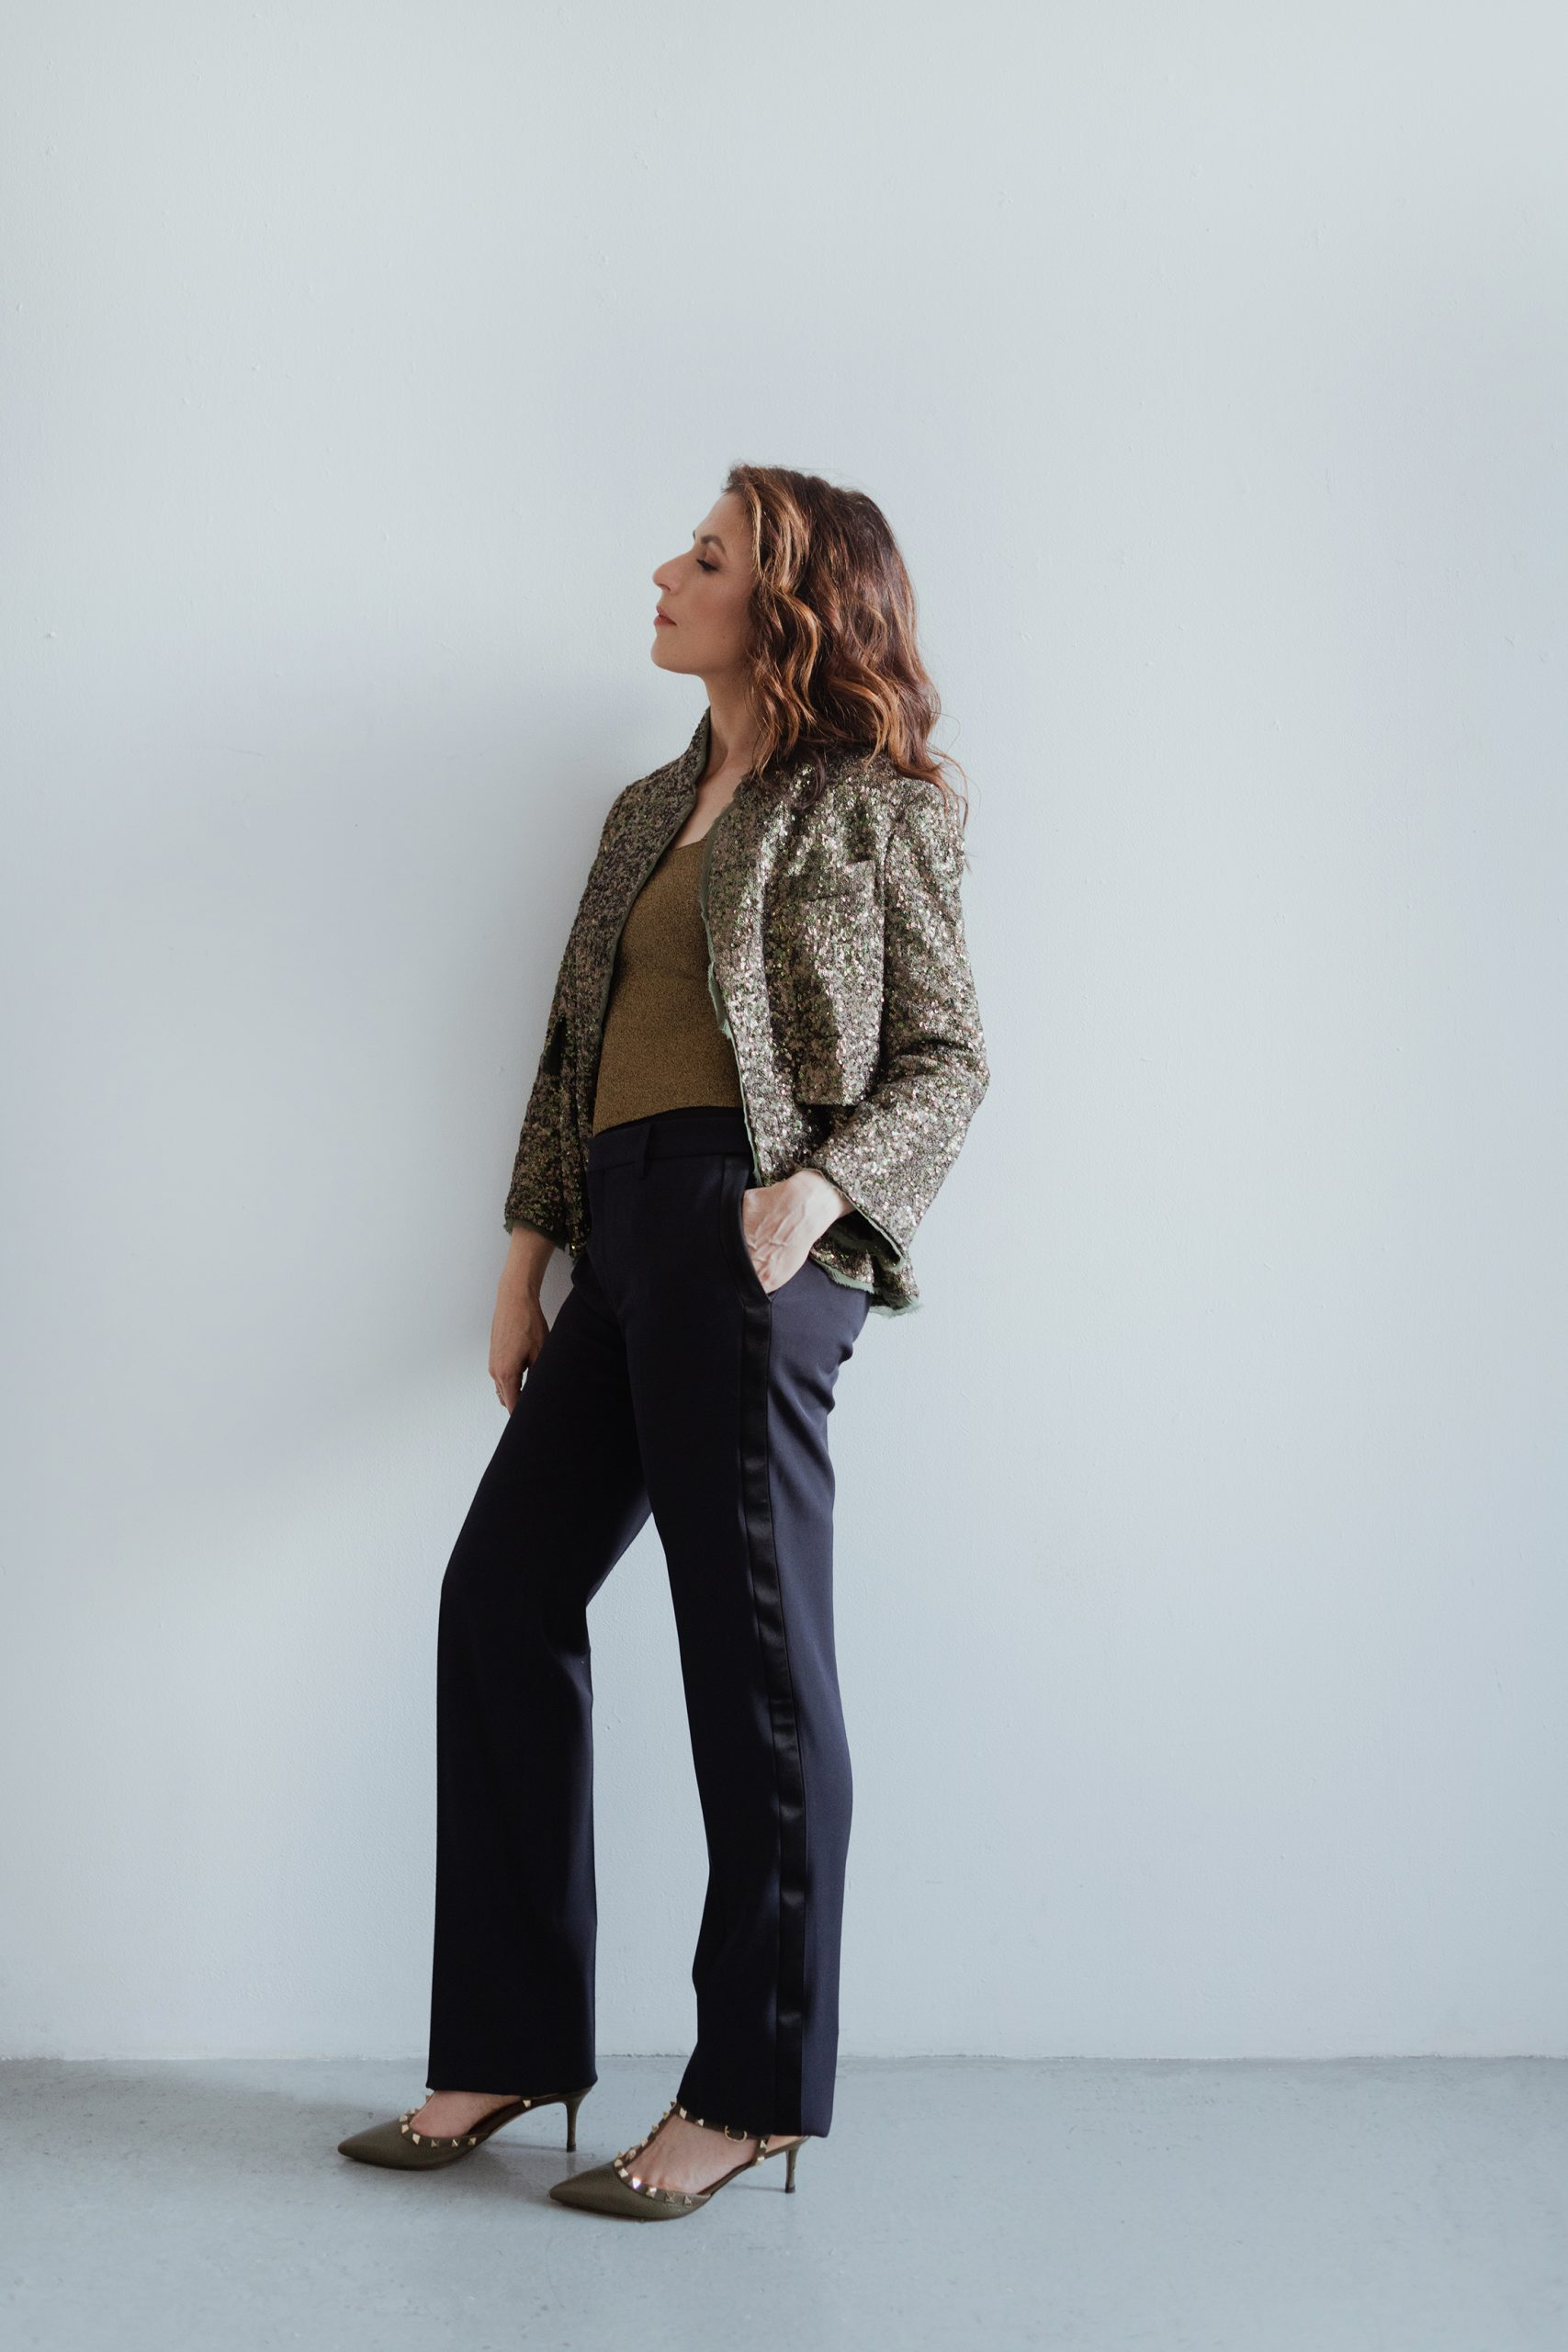 Inbal Segev leans against a while wall wearing dark pants, and a brown patterned blazer.